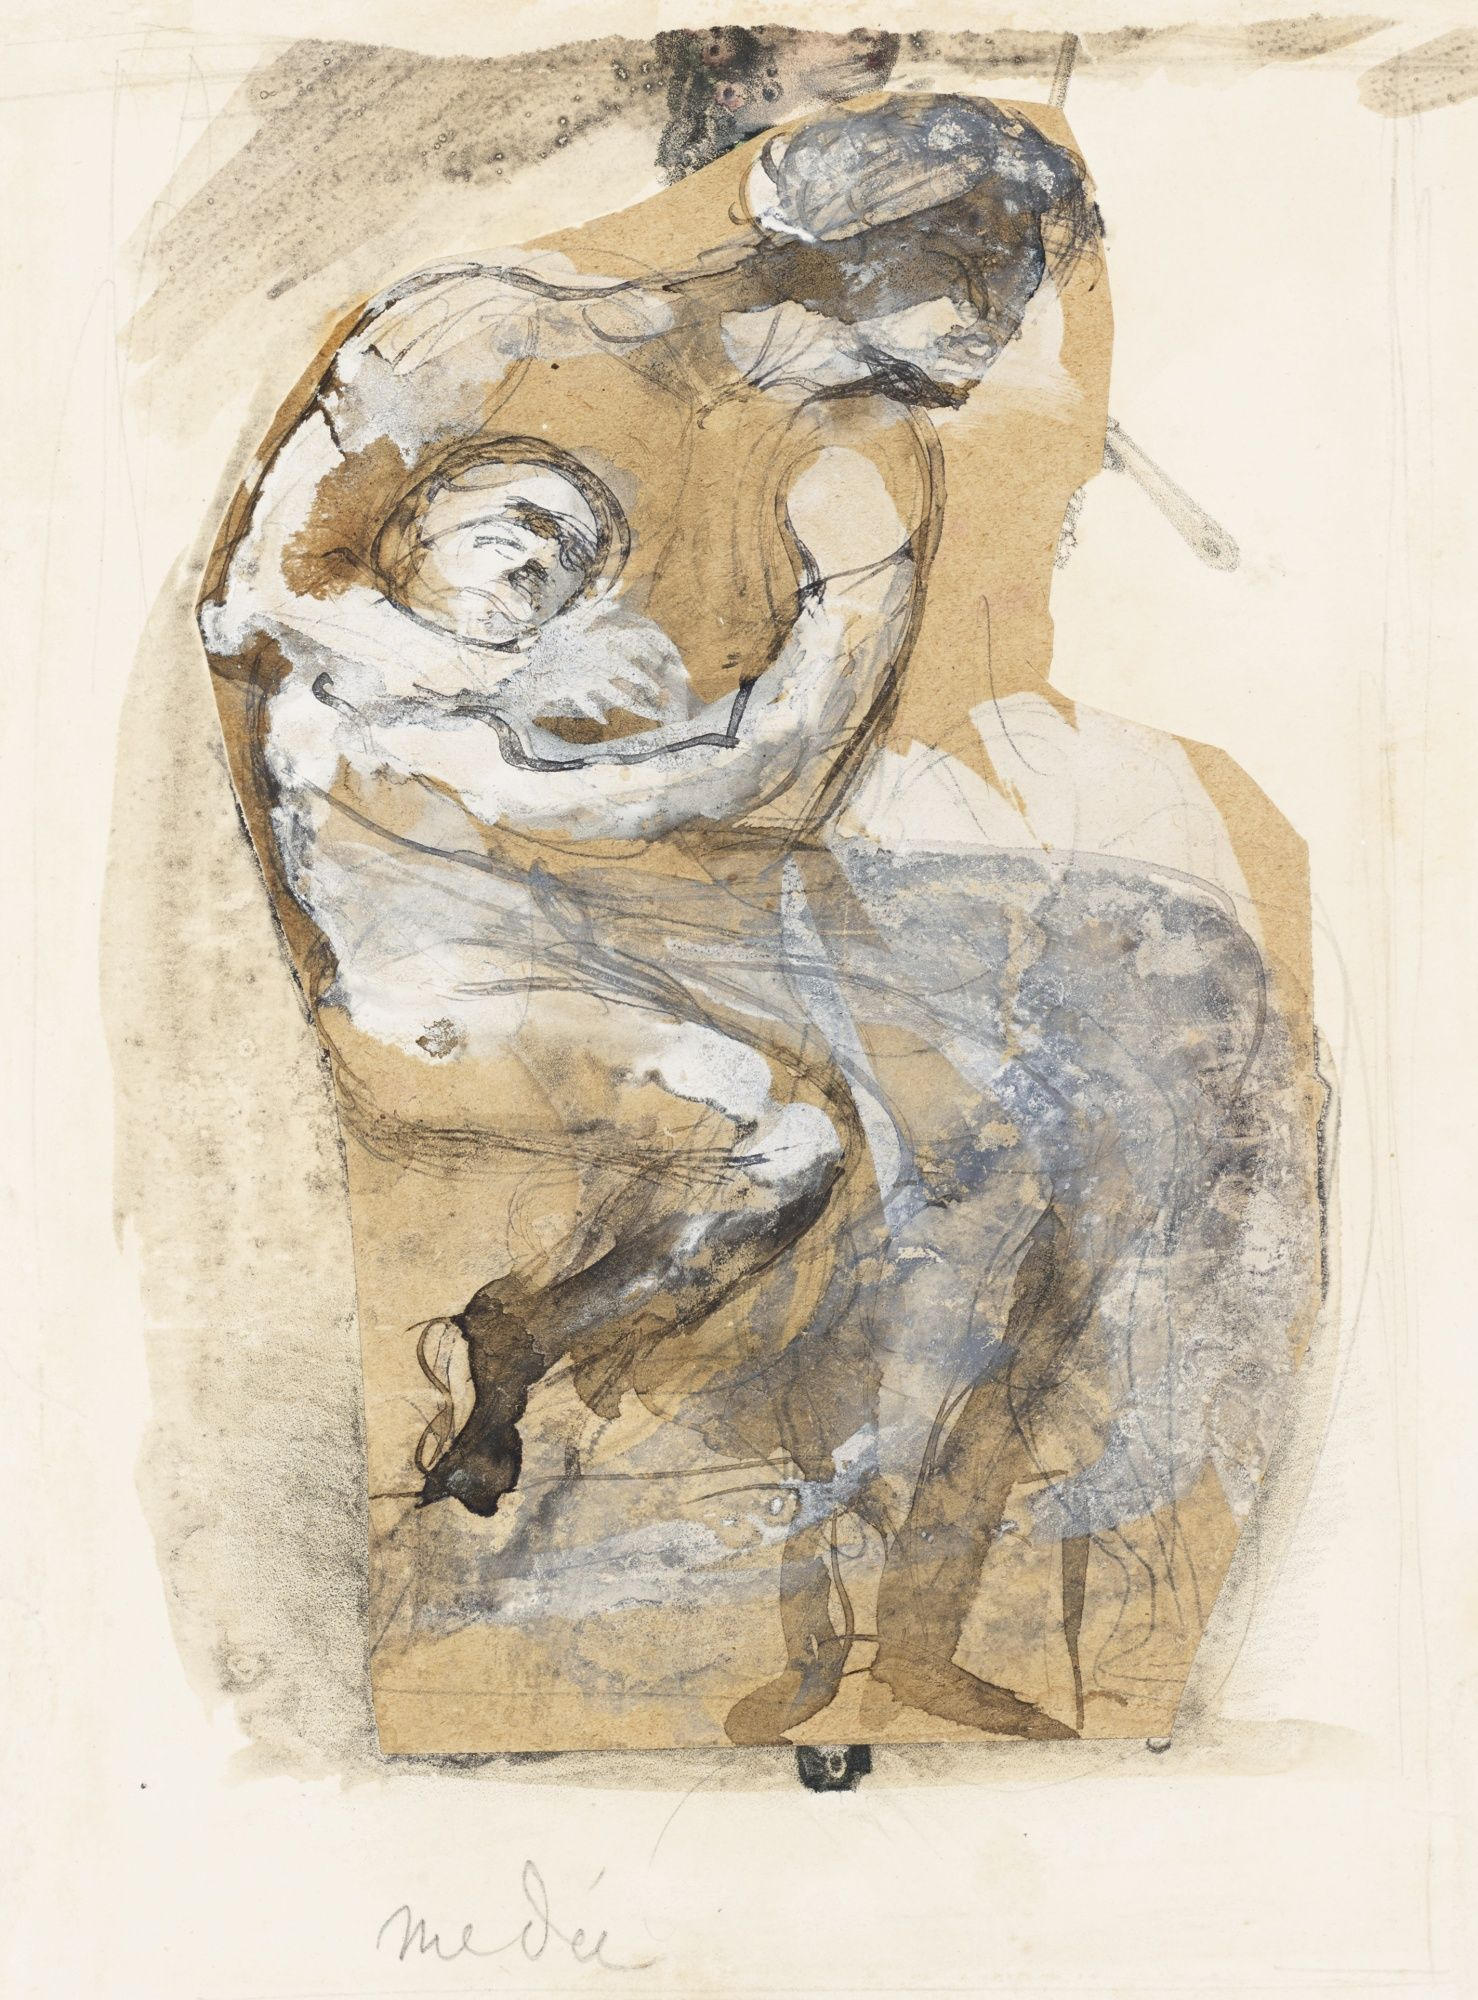 AUGUSTE RODIN 1840 - 1917 MÉDÉE titled (towards lower left) ink, gouache, sepia over lead pencil and collage on paper 21.5 by 16.4cm., 8 1/2 by 6 1/2 in.